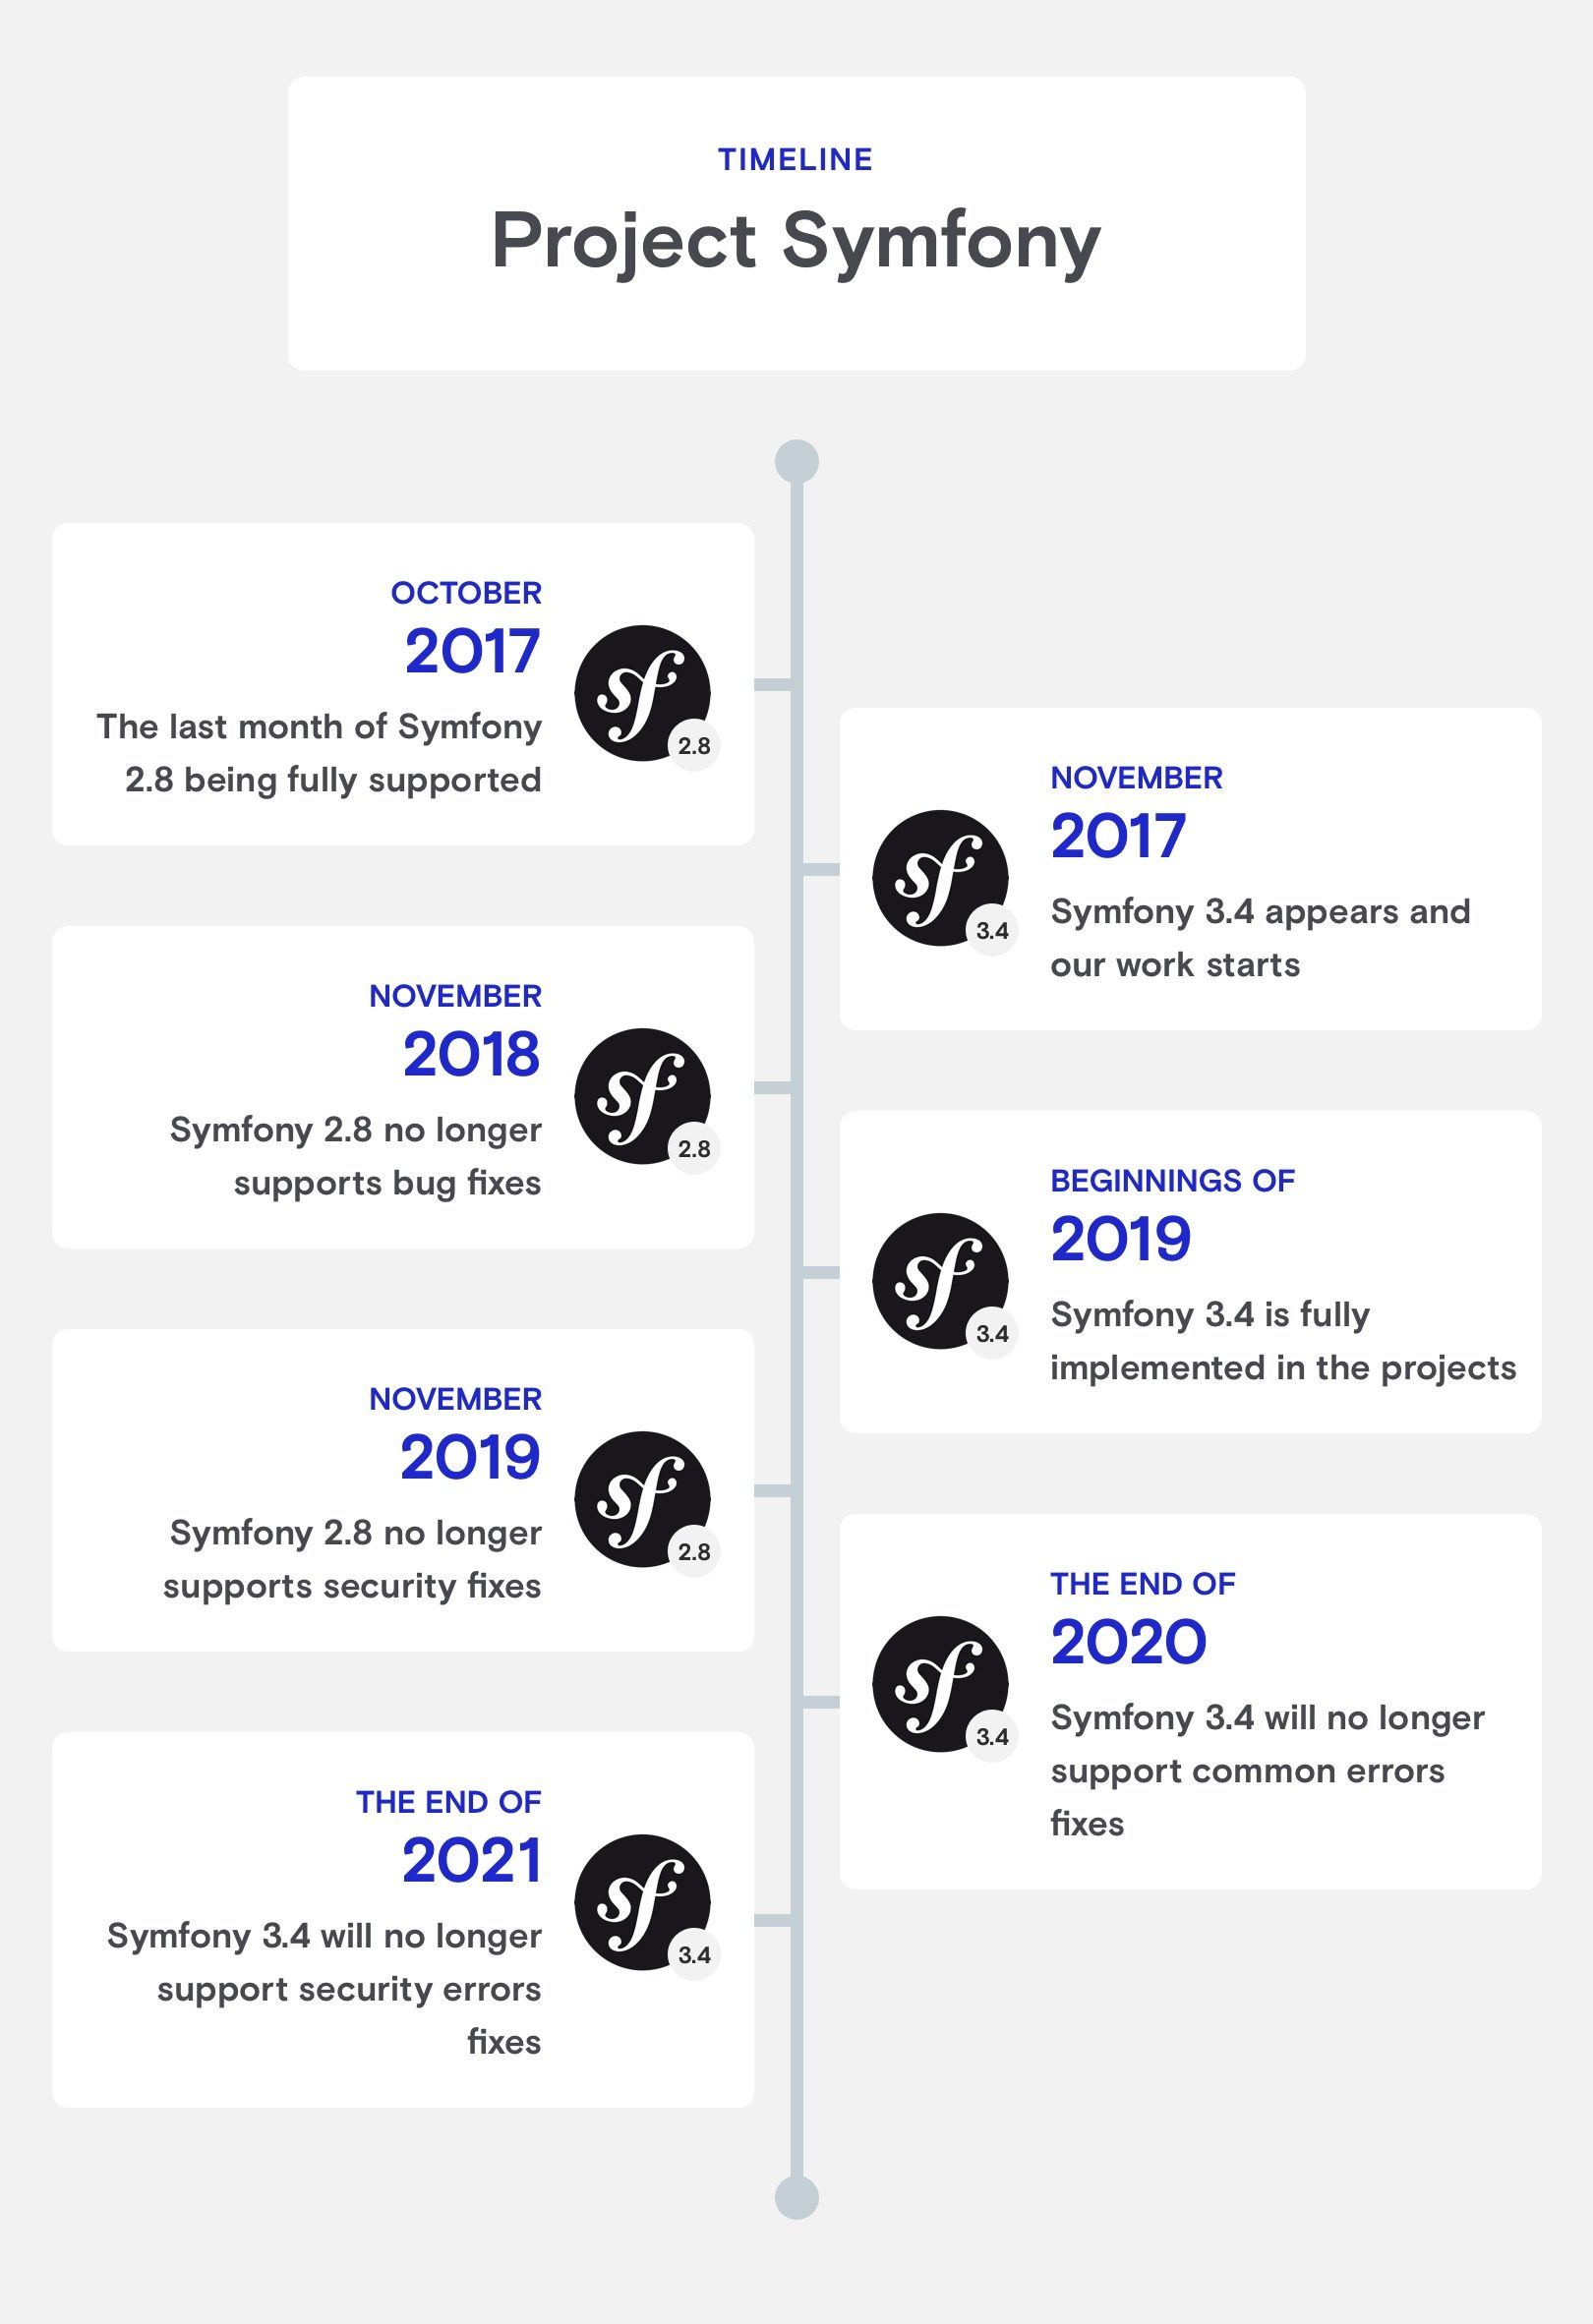 symfony timeline in our projects from 2017 to 2021